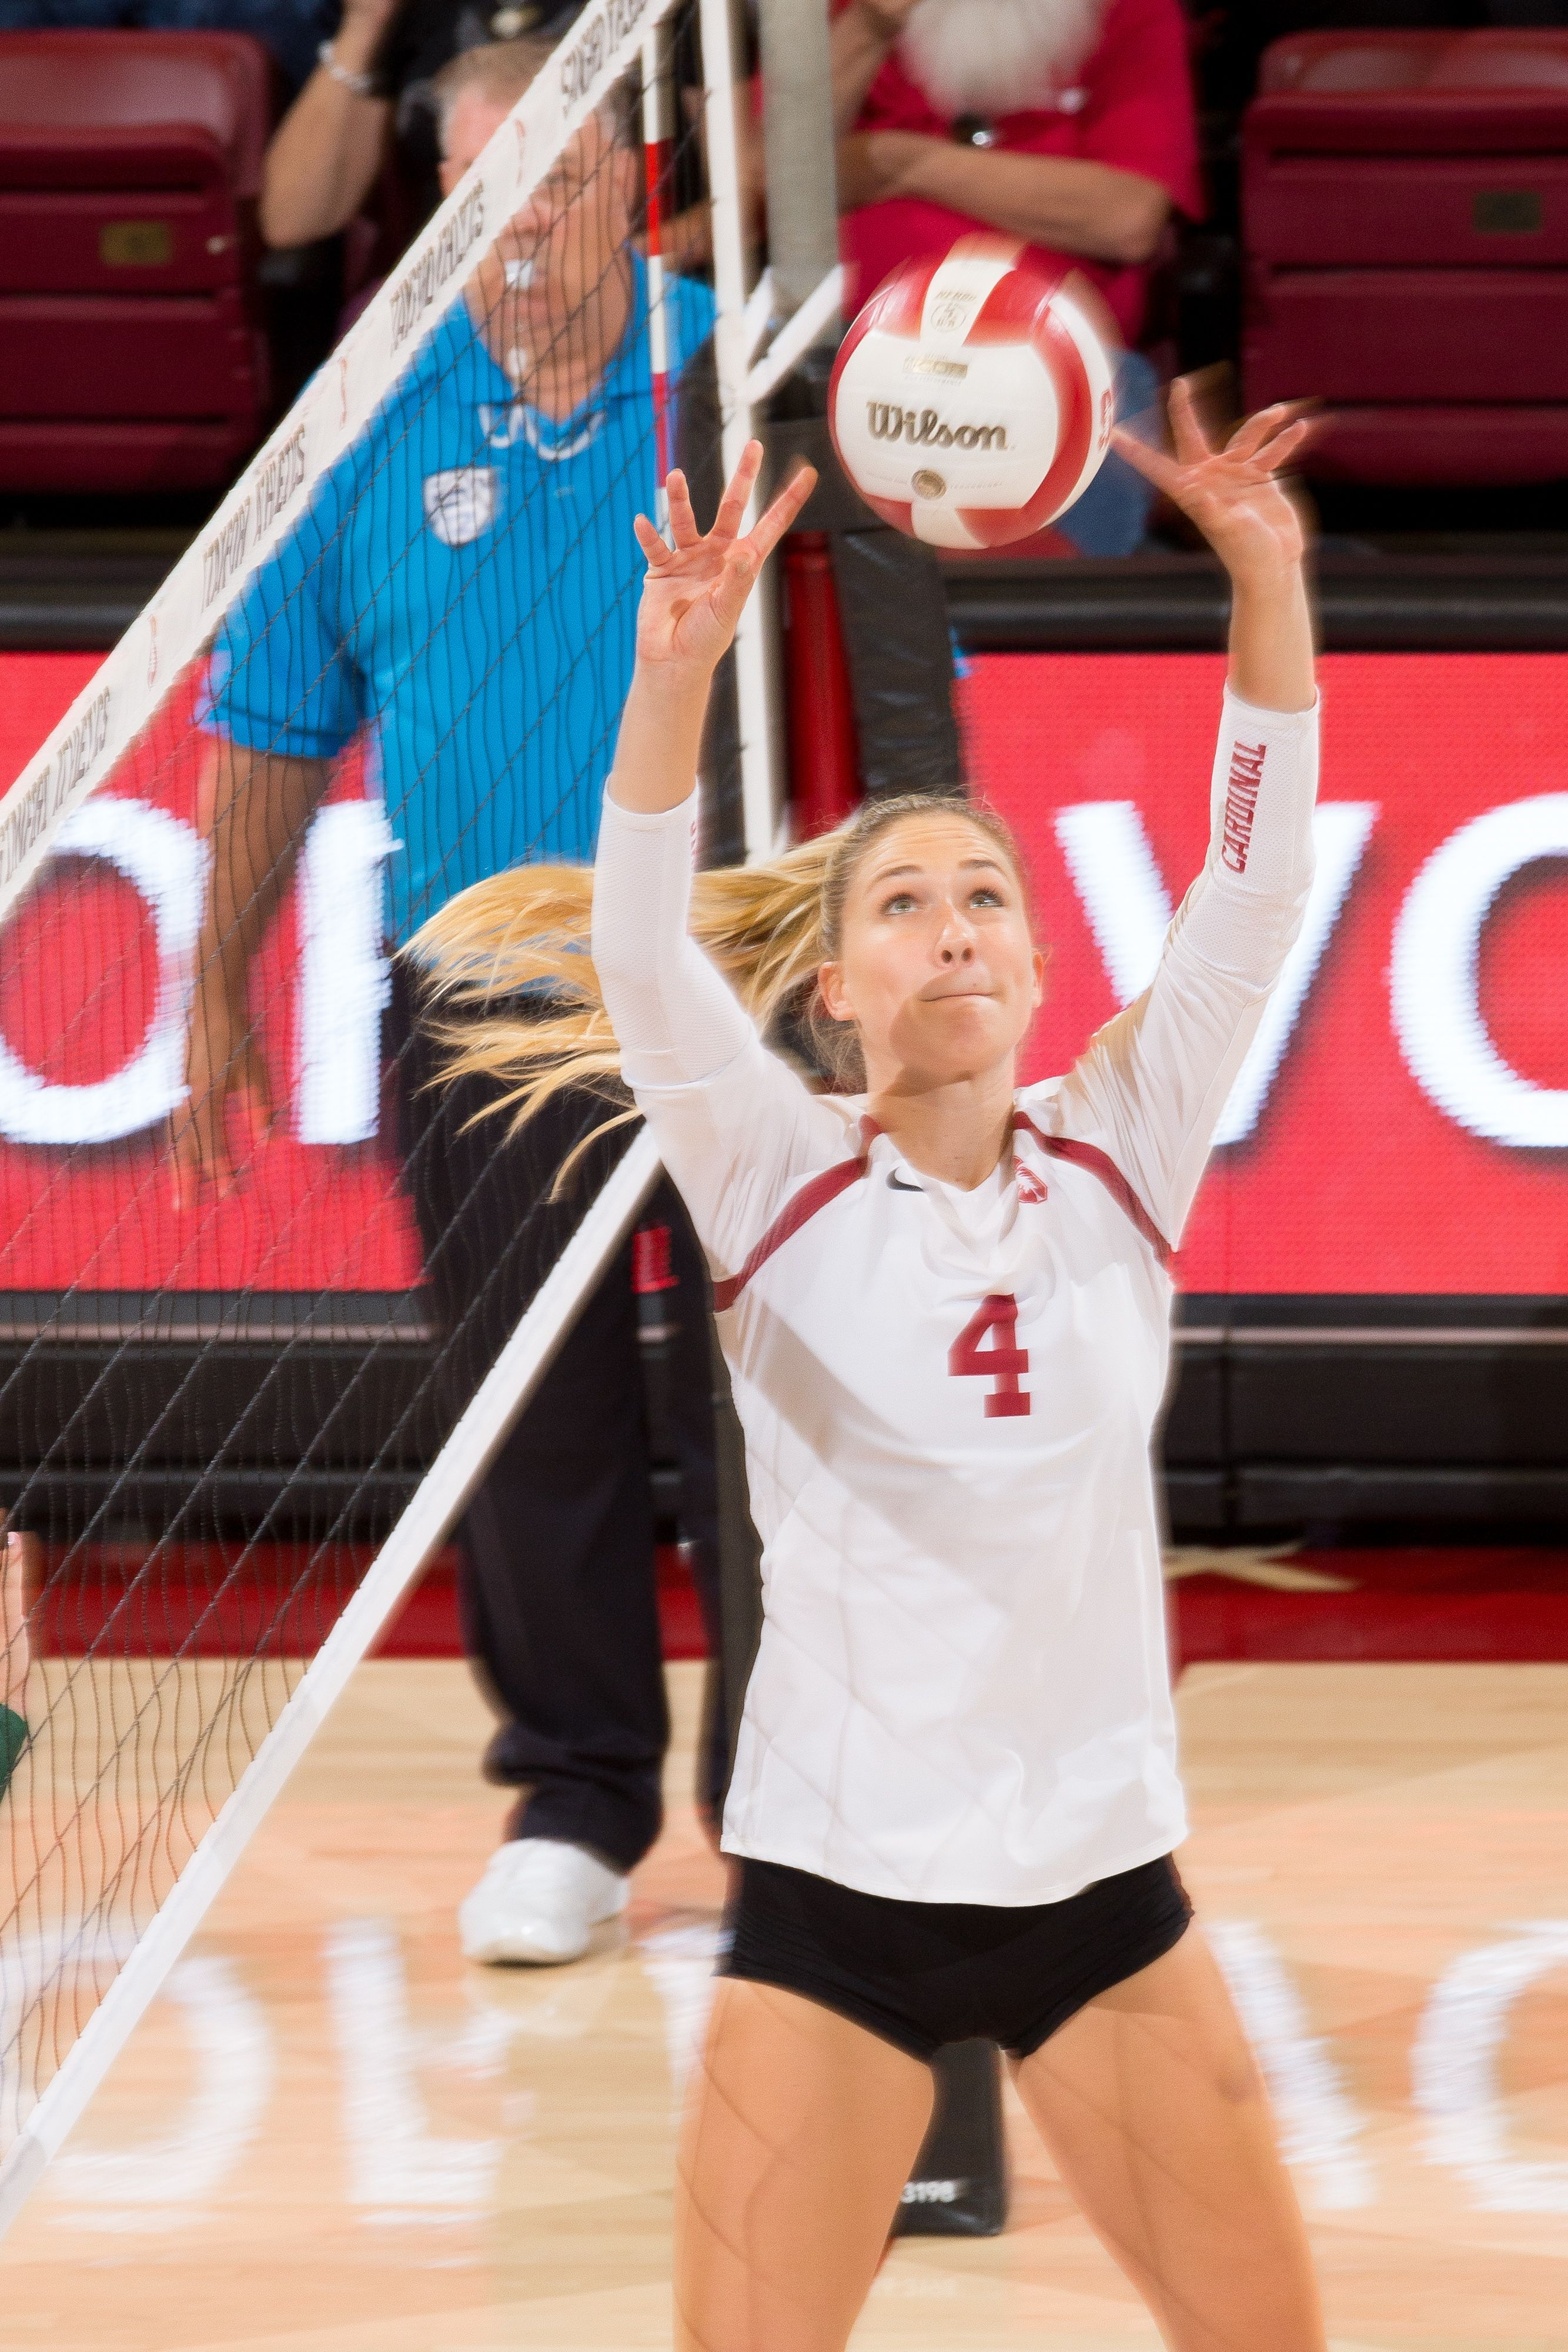 Stanford S Humphreys Turns Positive Energy Into Winning Role For Cardinal Stanford Volleyball Female Volleyball Players Volleyball Senior Pictures